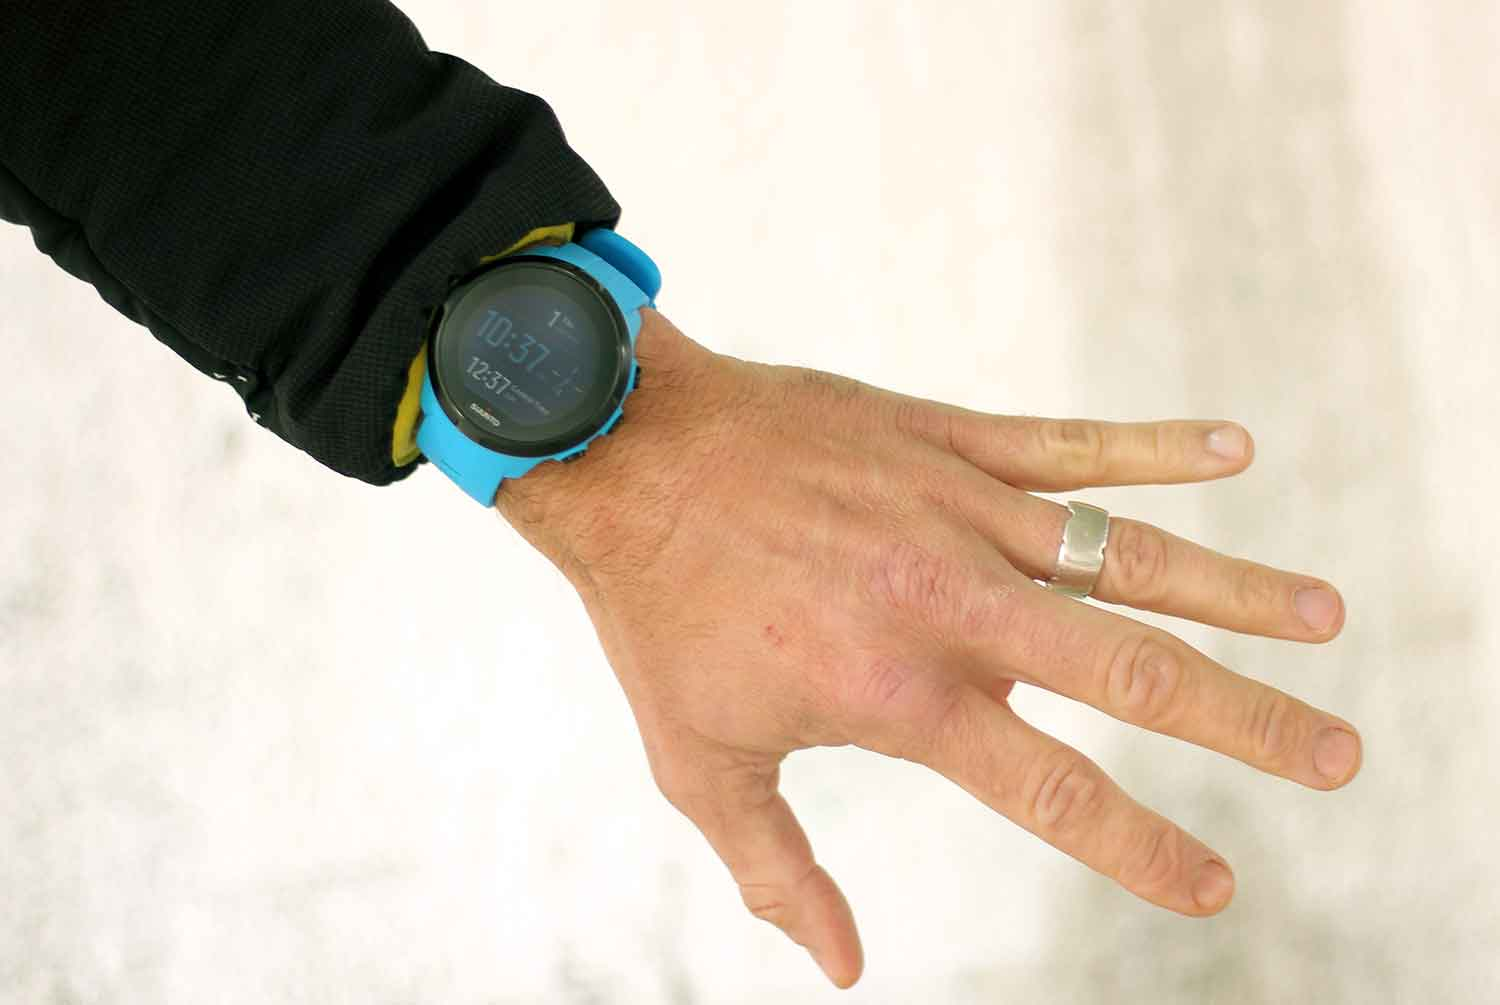 First Look: Suunto Spartan Sport Wrist HR